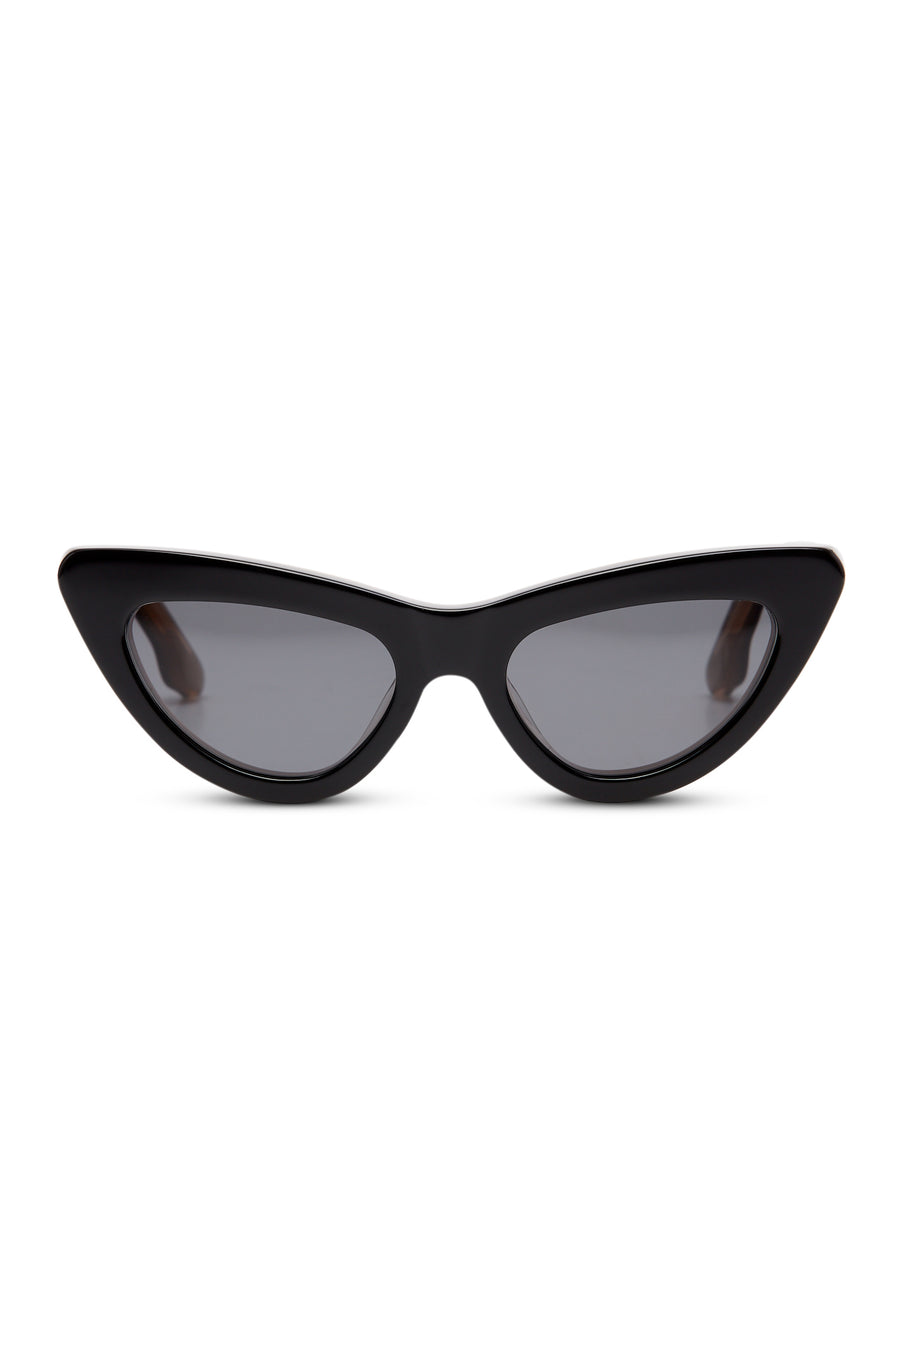 The ST Feline Cat Sunglasses feature a graceful cat eye design and smoky lenses.